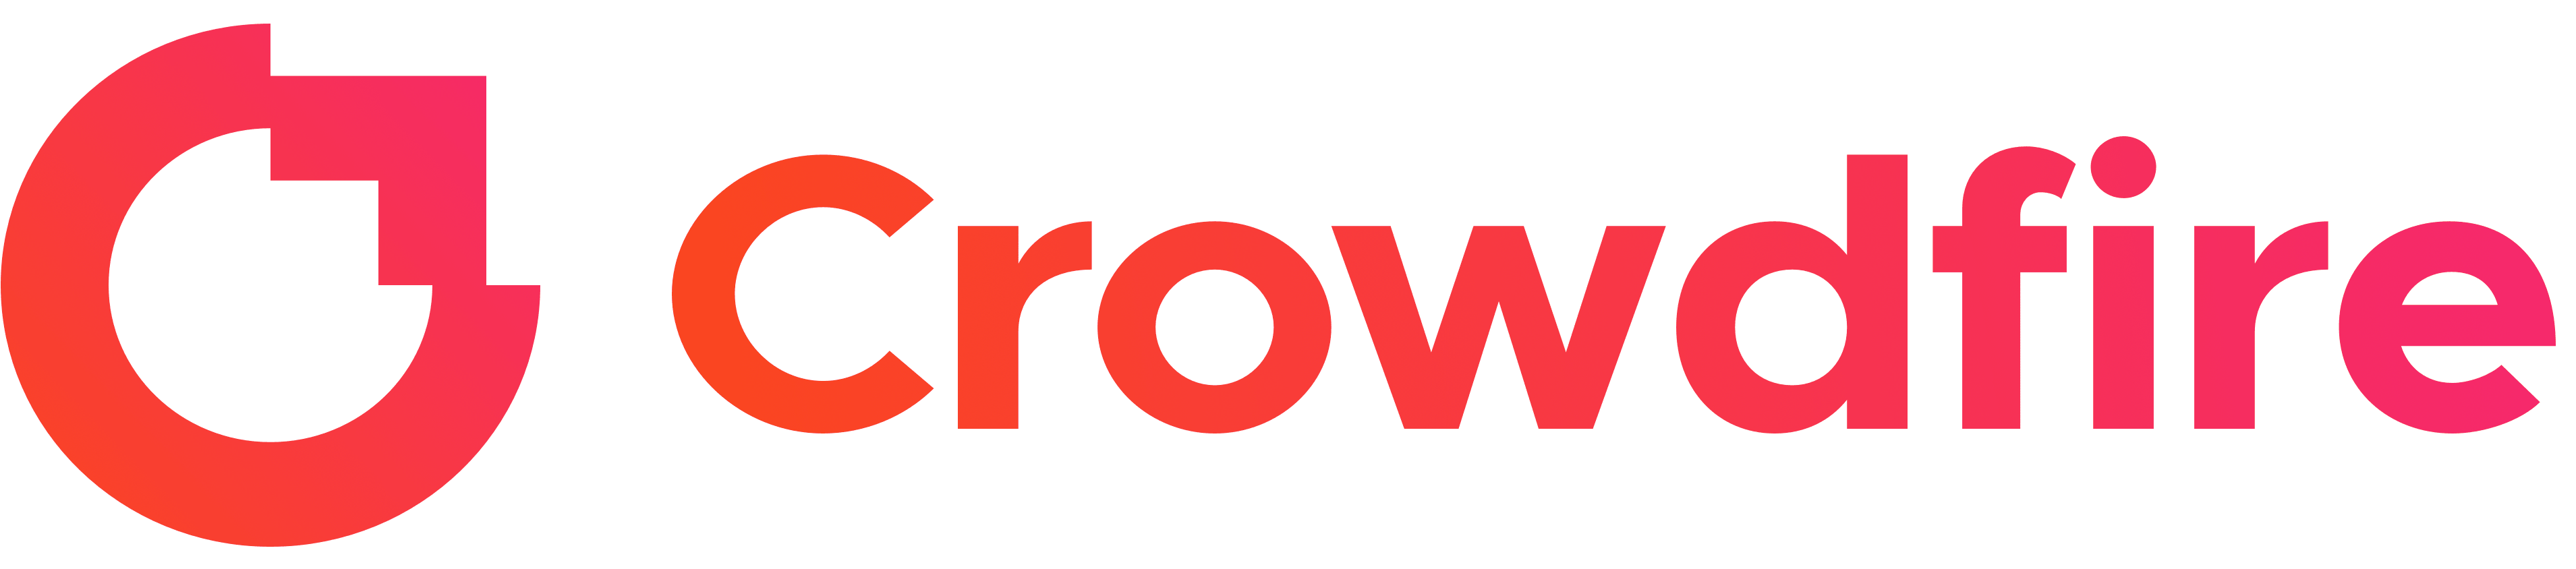 Crowdfire Coupon & Startup Discount